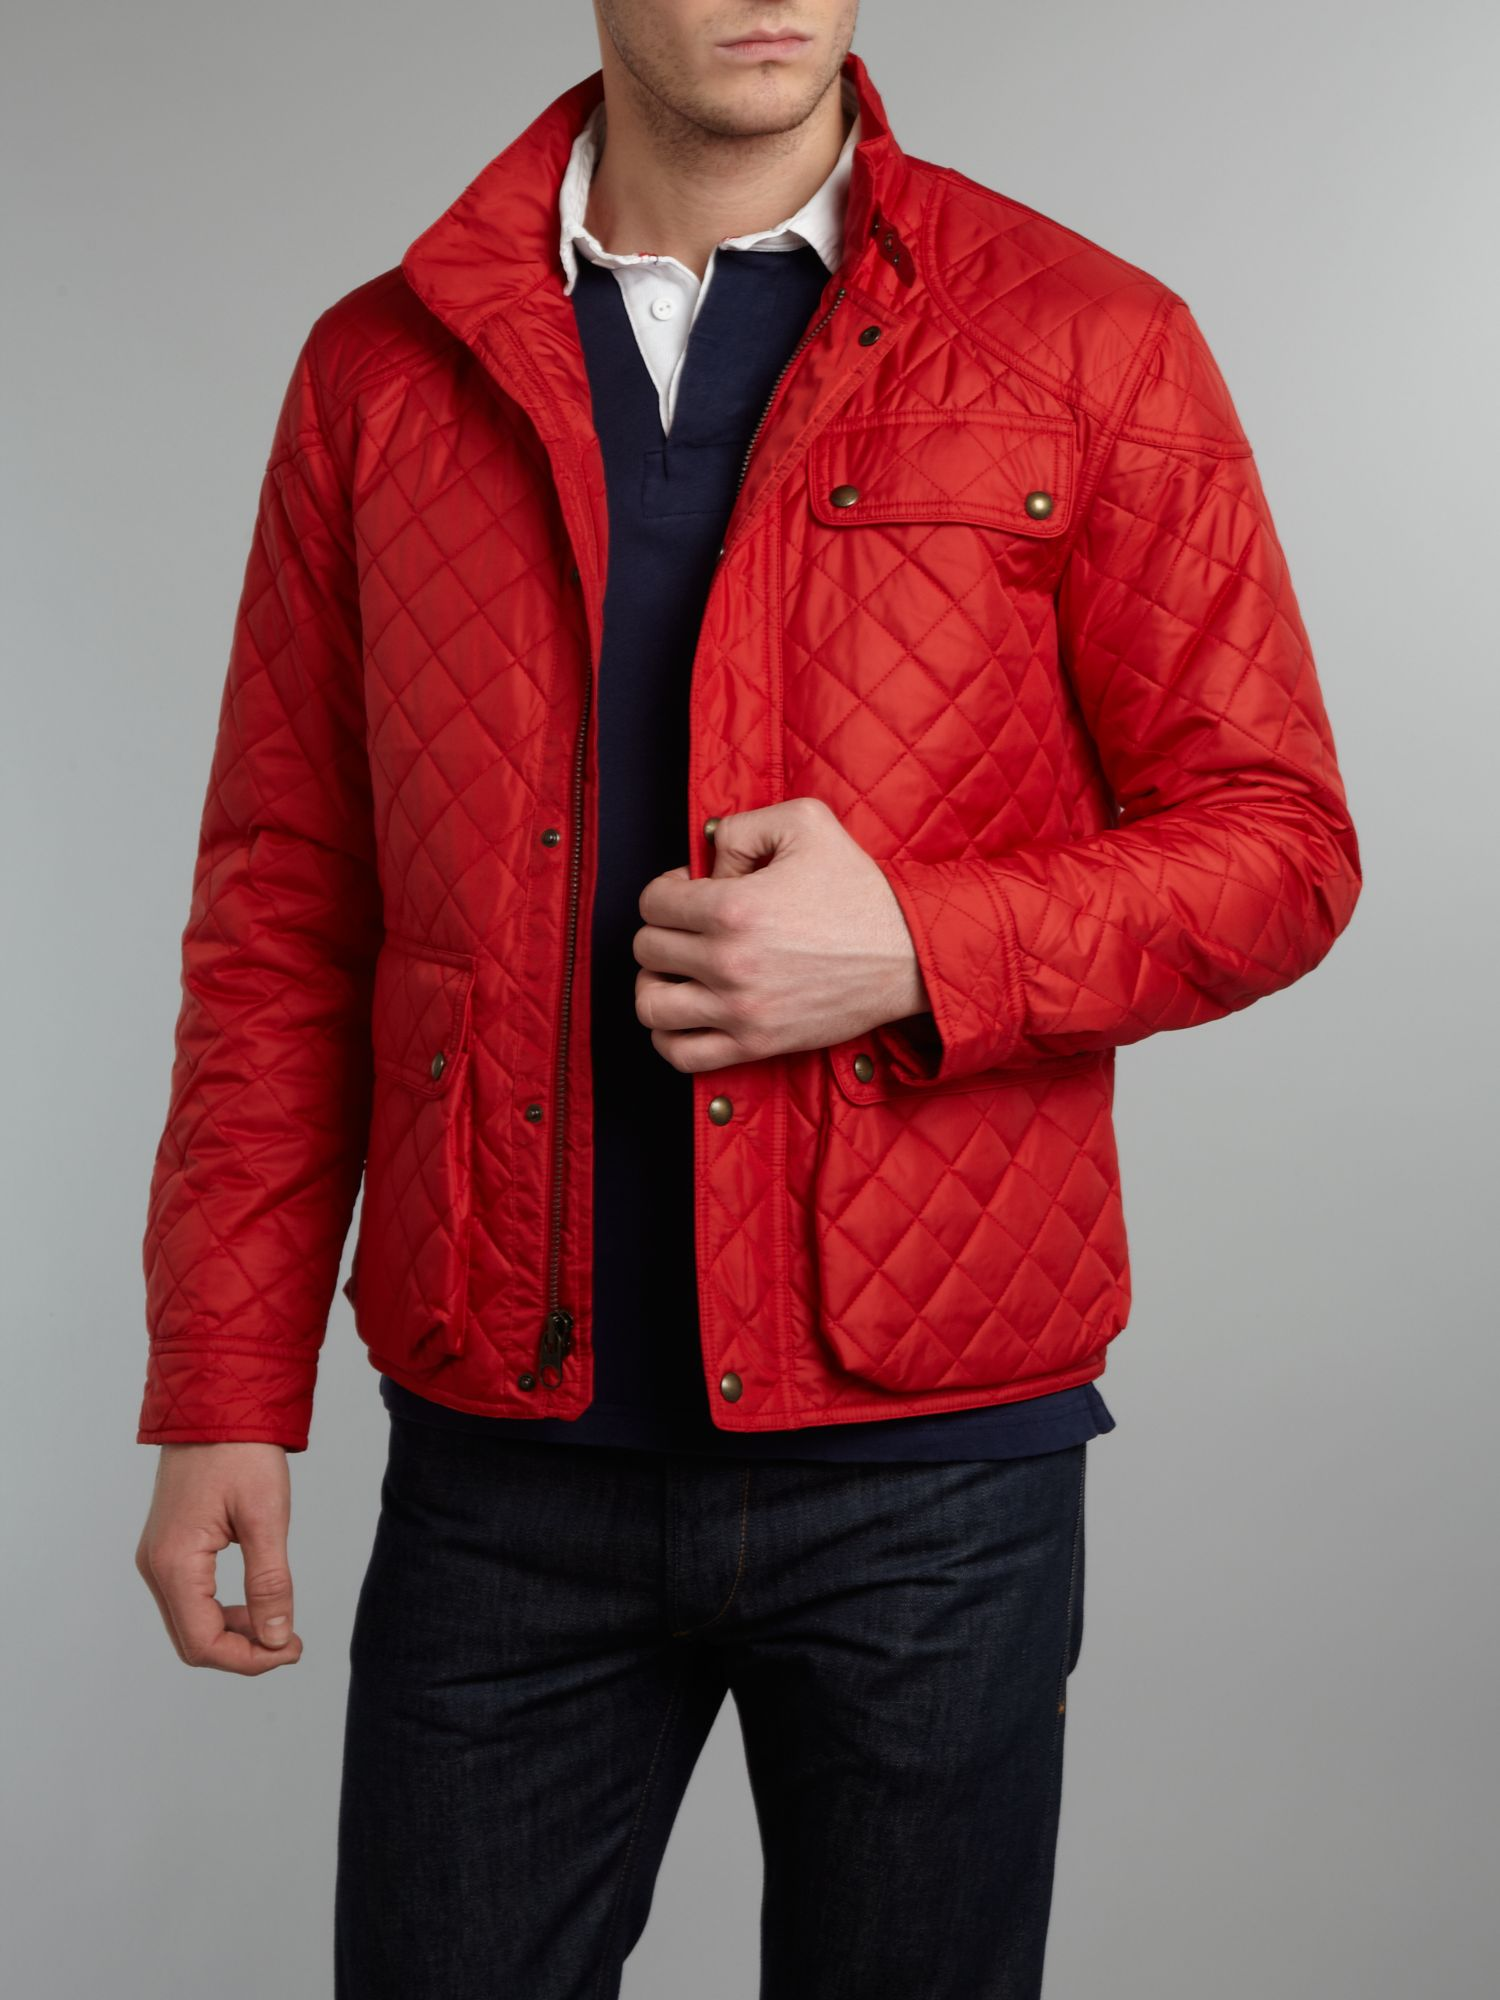 polo ralph lauren cadwell quilted bomber jacket in red for men lyst. Black Bedroom Furniture Sets. Home Design Ideas